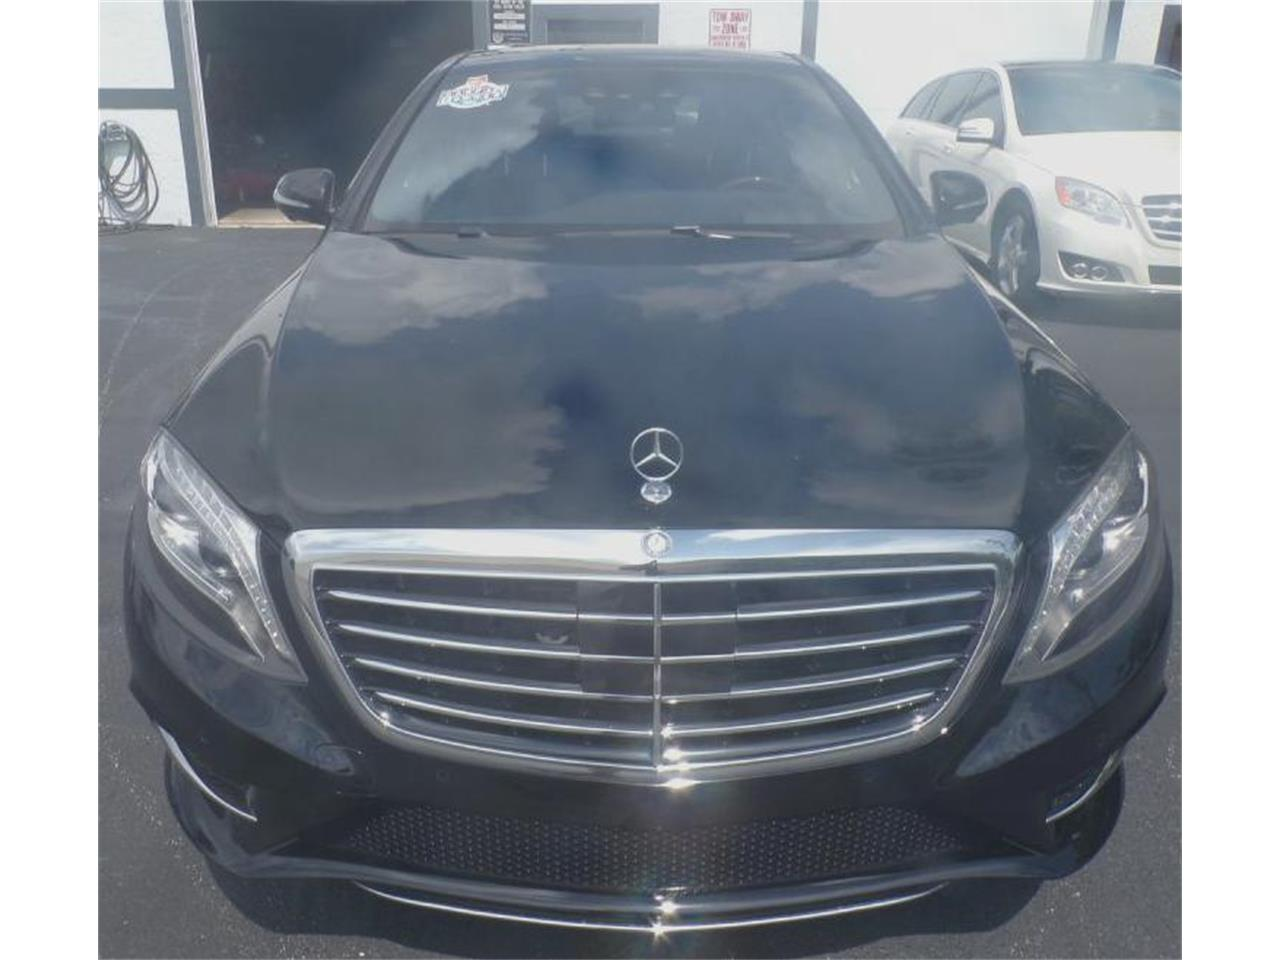 2017 Mercedes-Benz S-Class (CC-1354281) for sale in Boca Raton, Florida